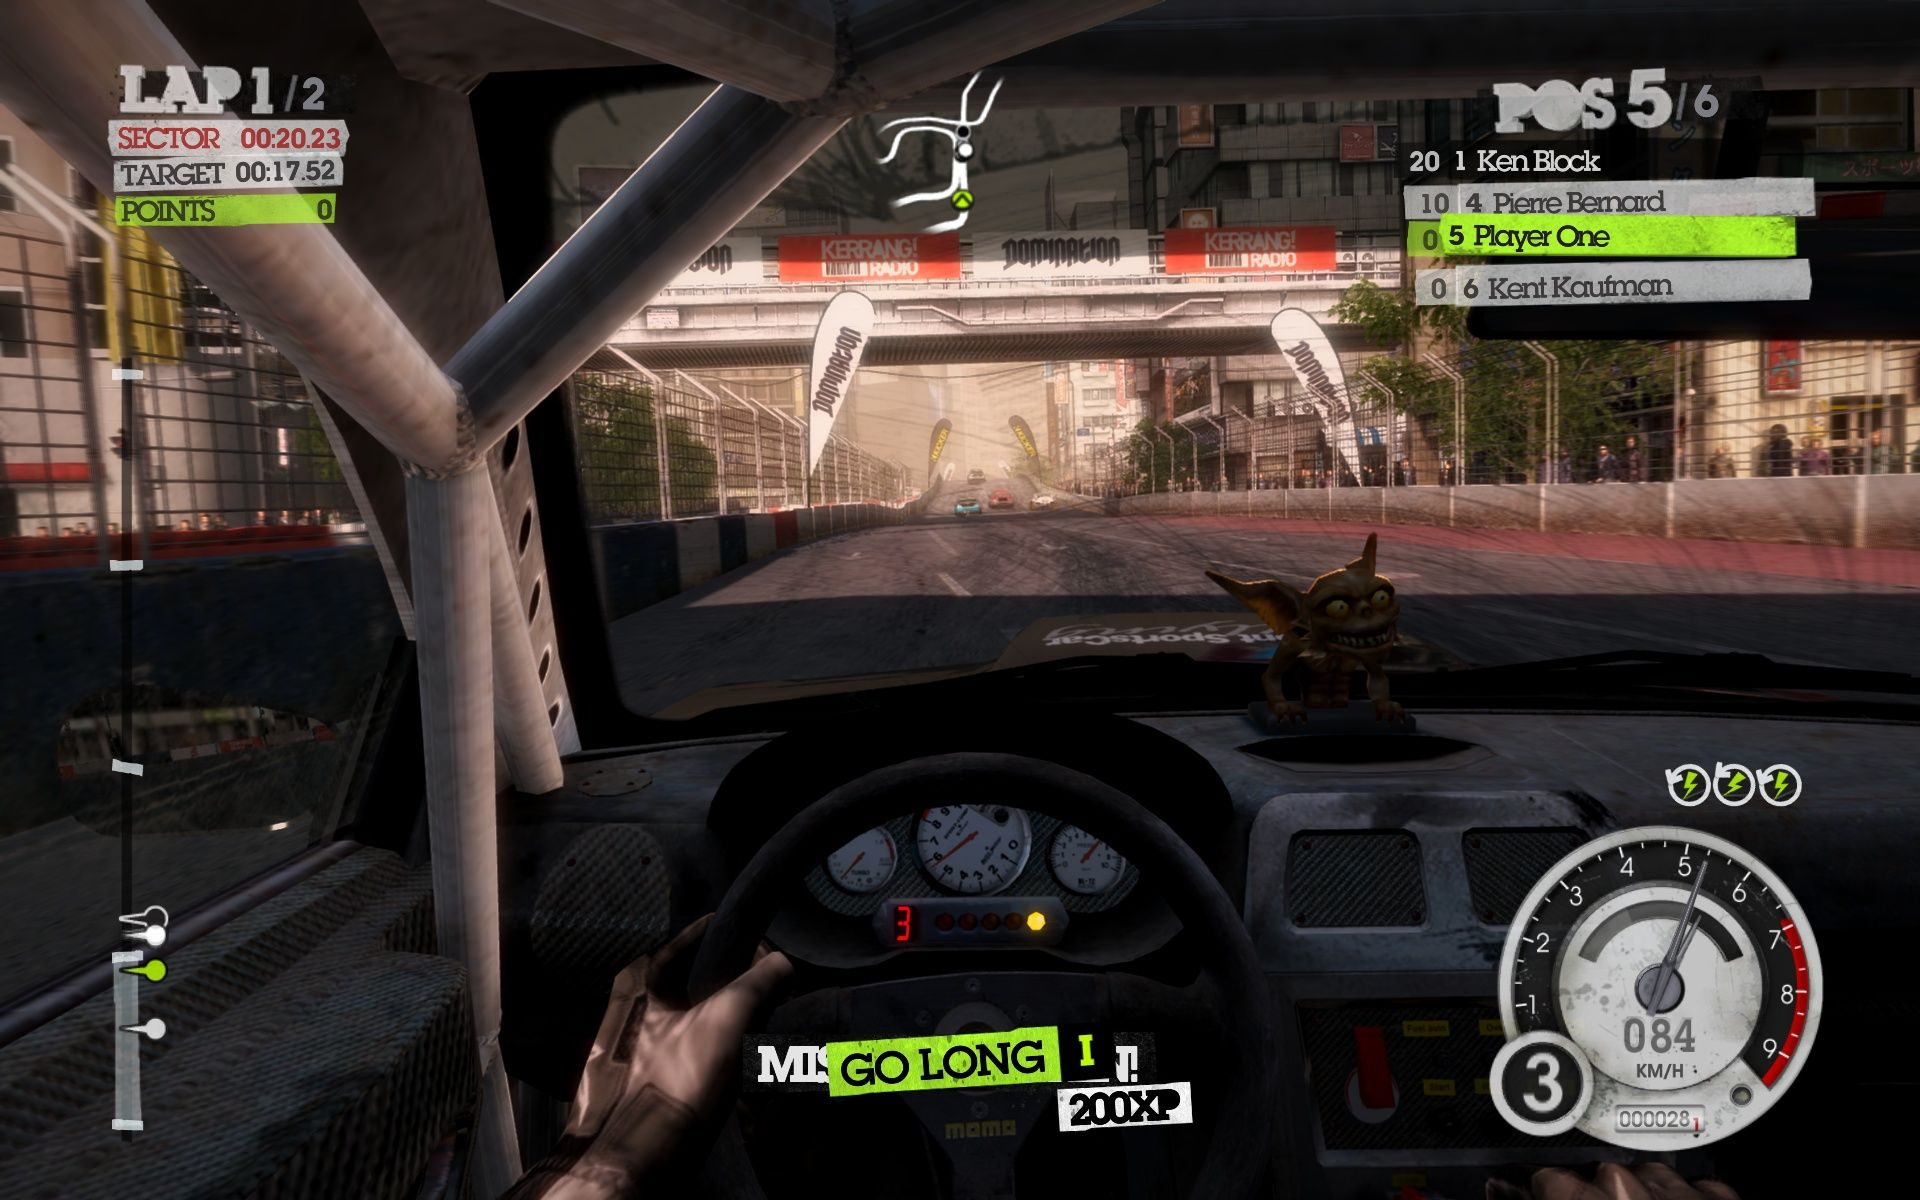 DiRT 2 Windows Completed a mission (see bottom).